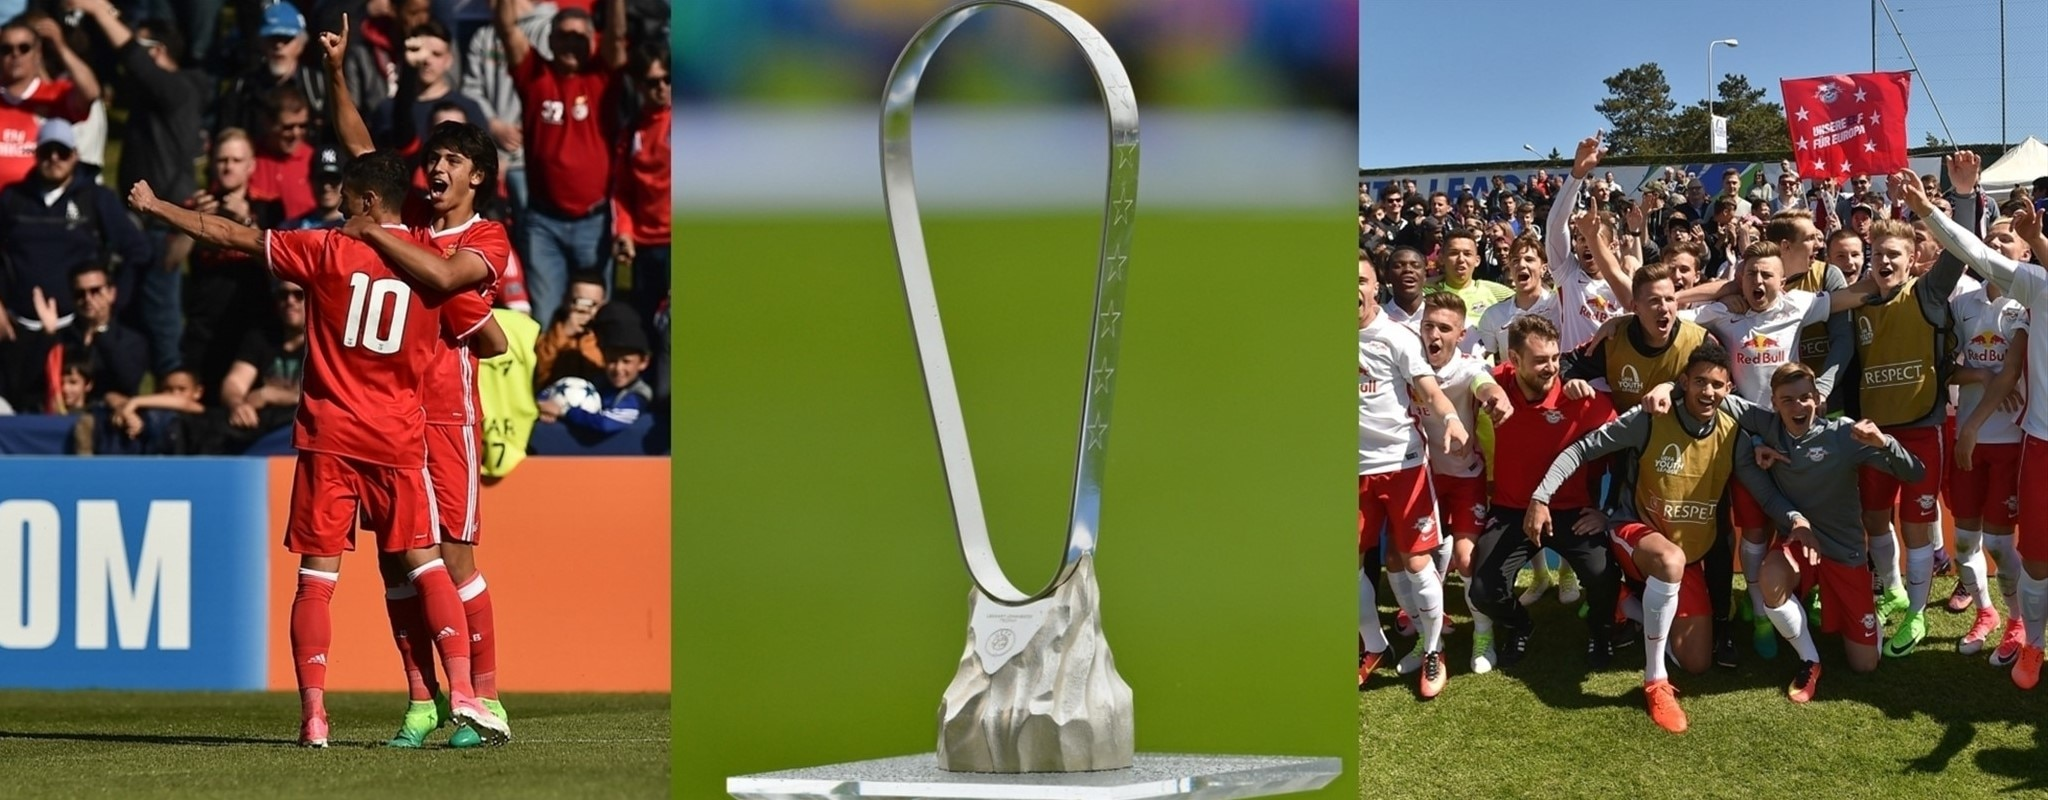 Youth League final preview: Benfica v Salzburg